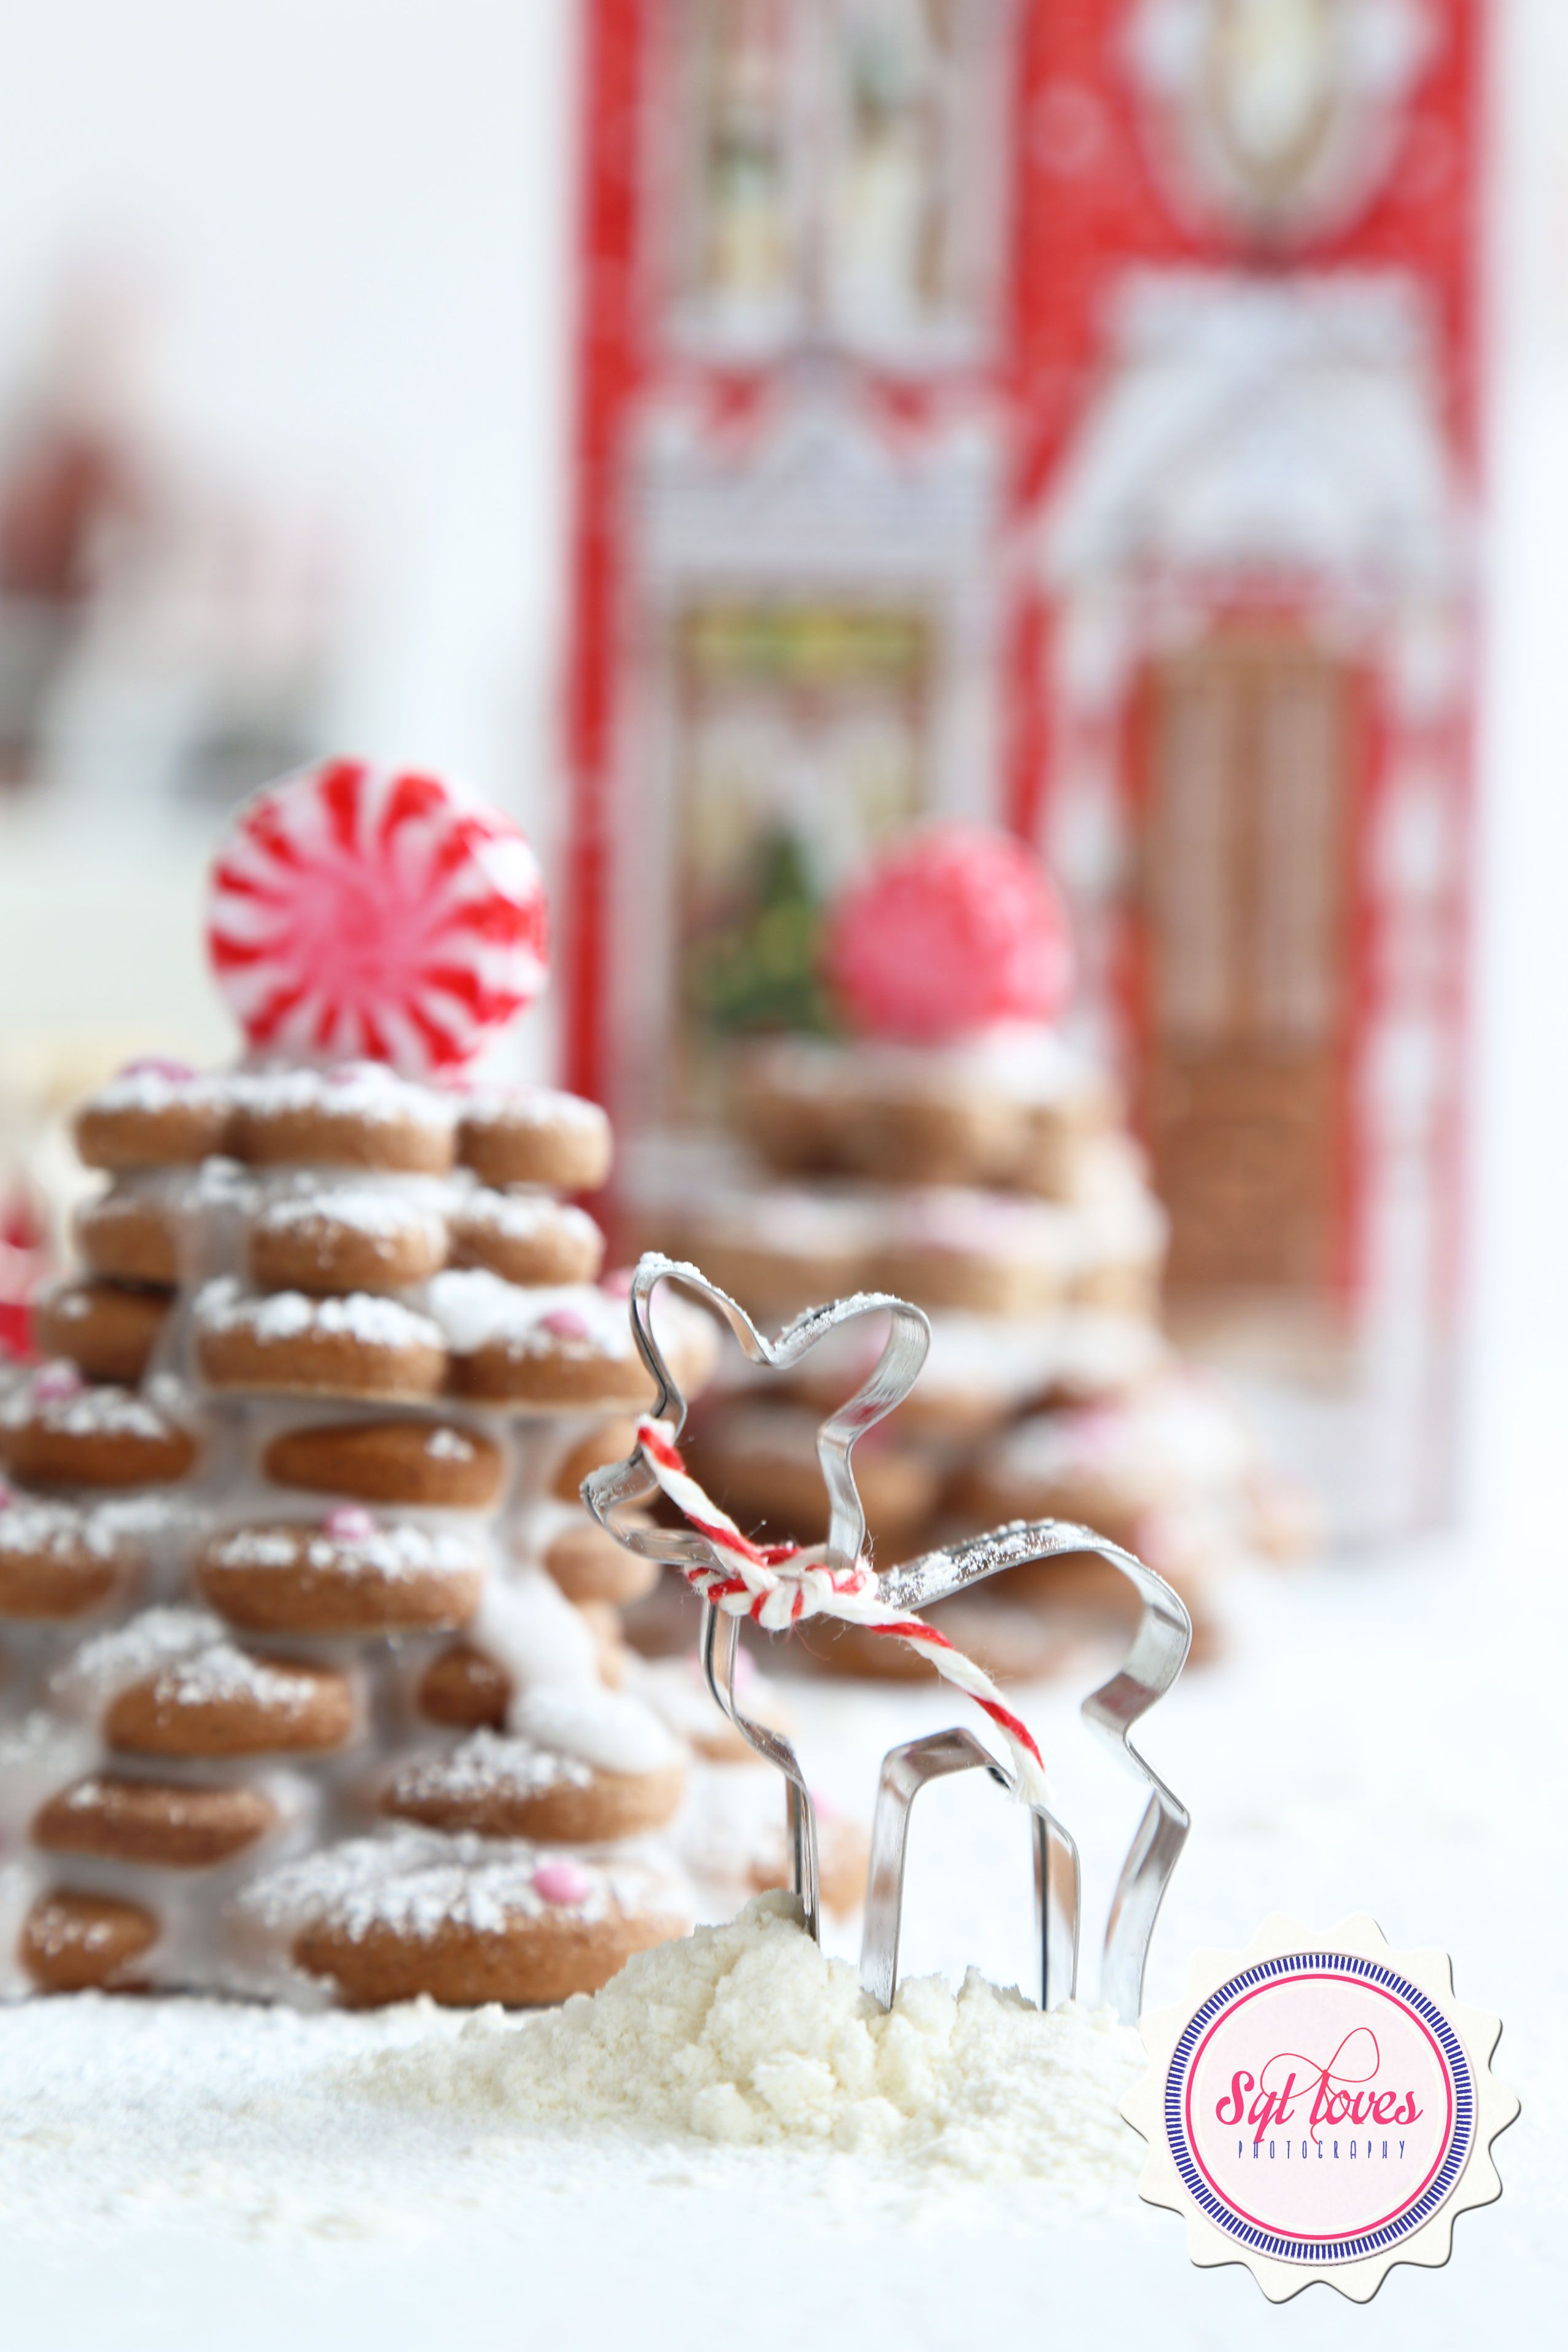 gingerbread, xmas, christmas, Syl loves, red white, holidays